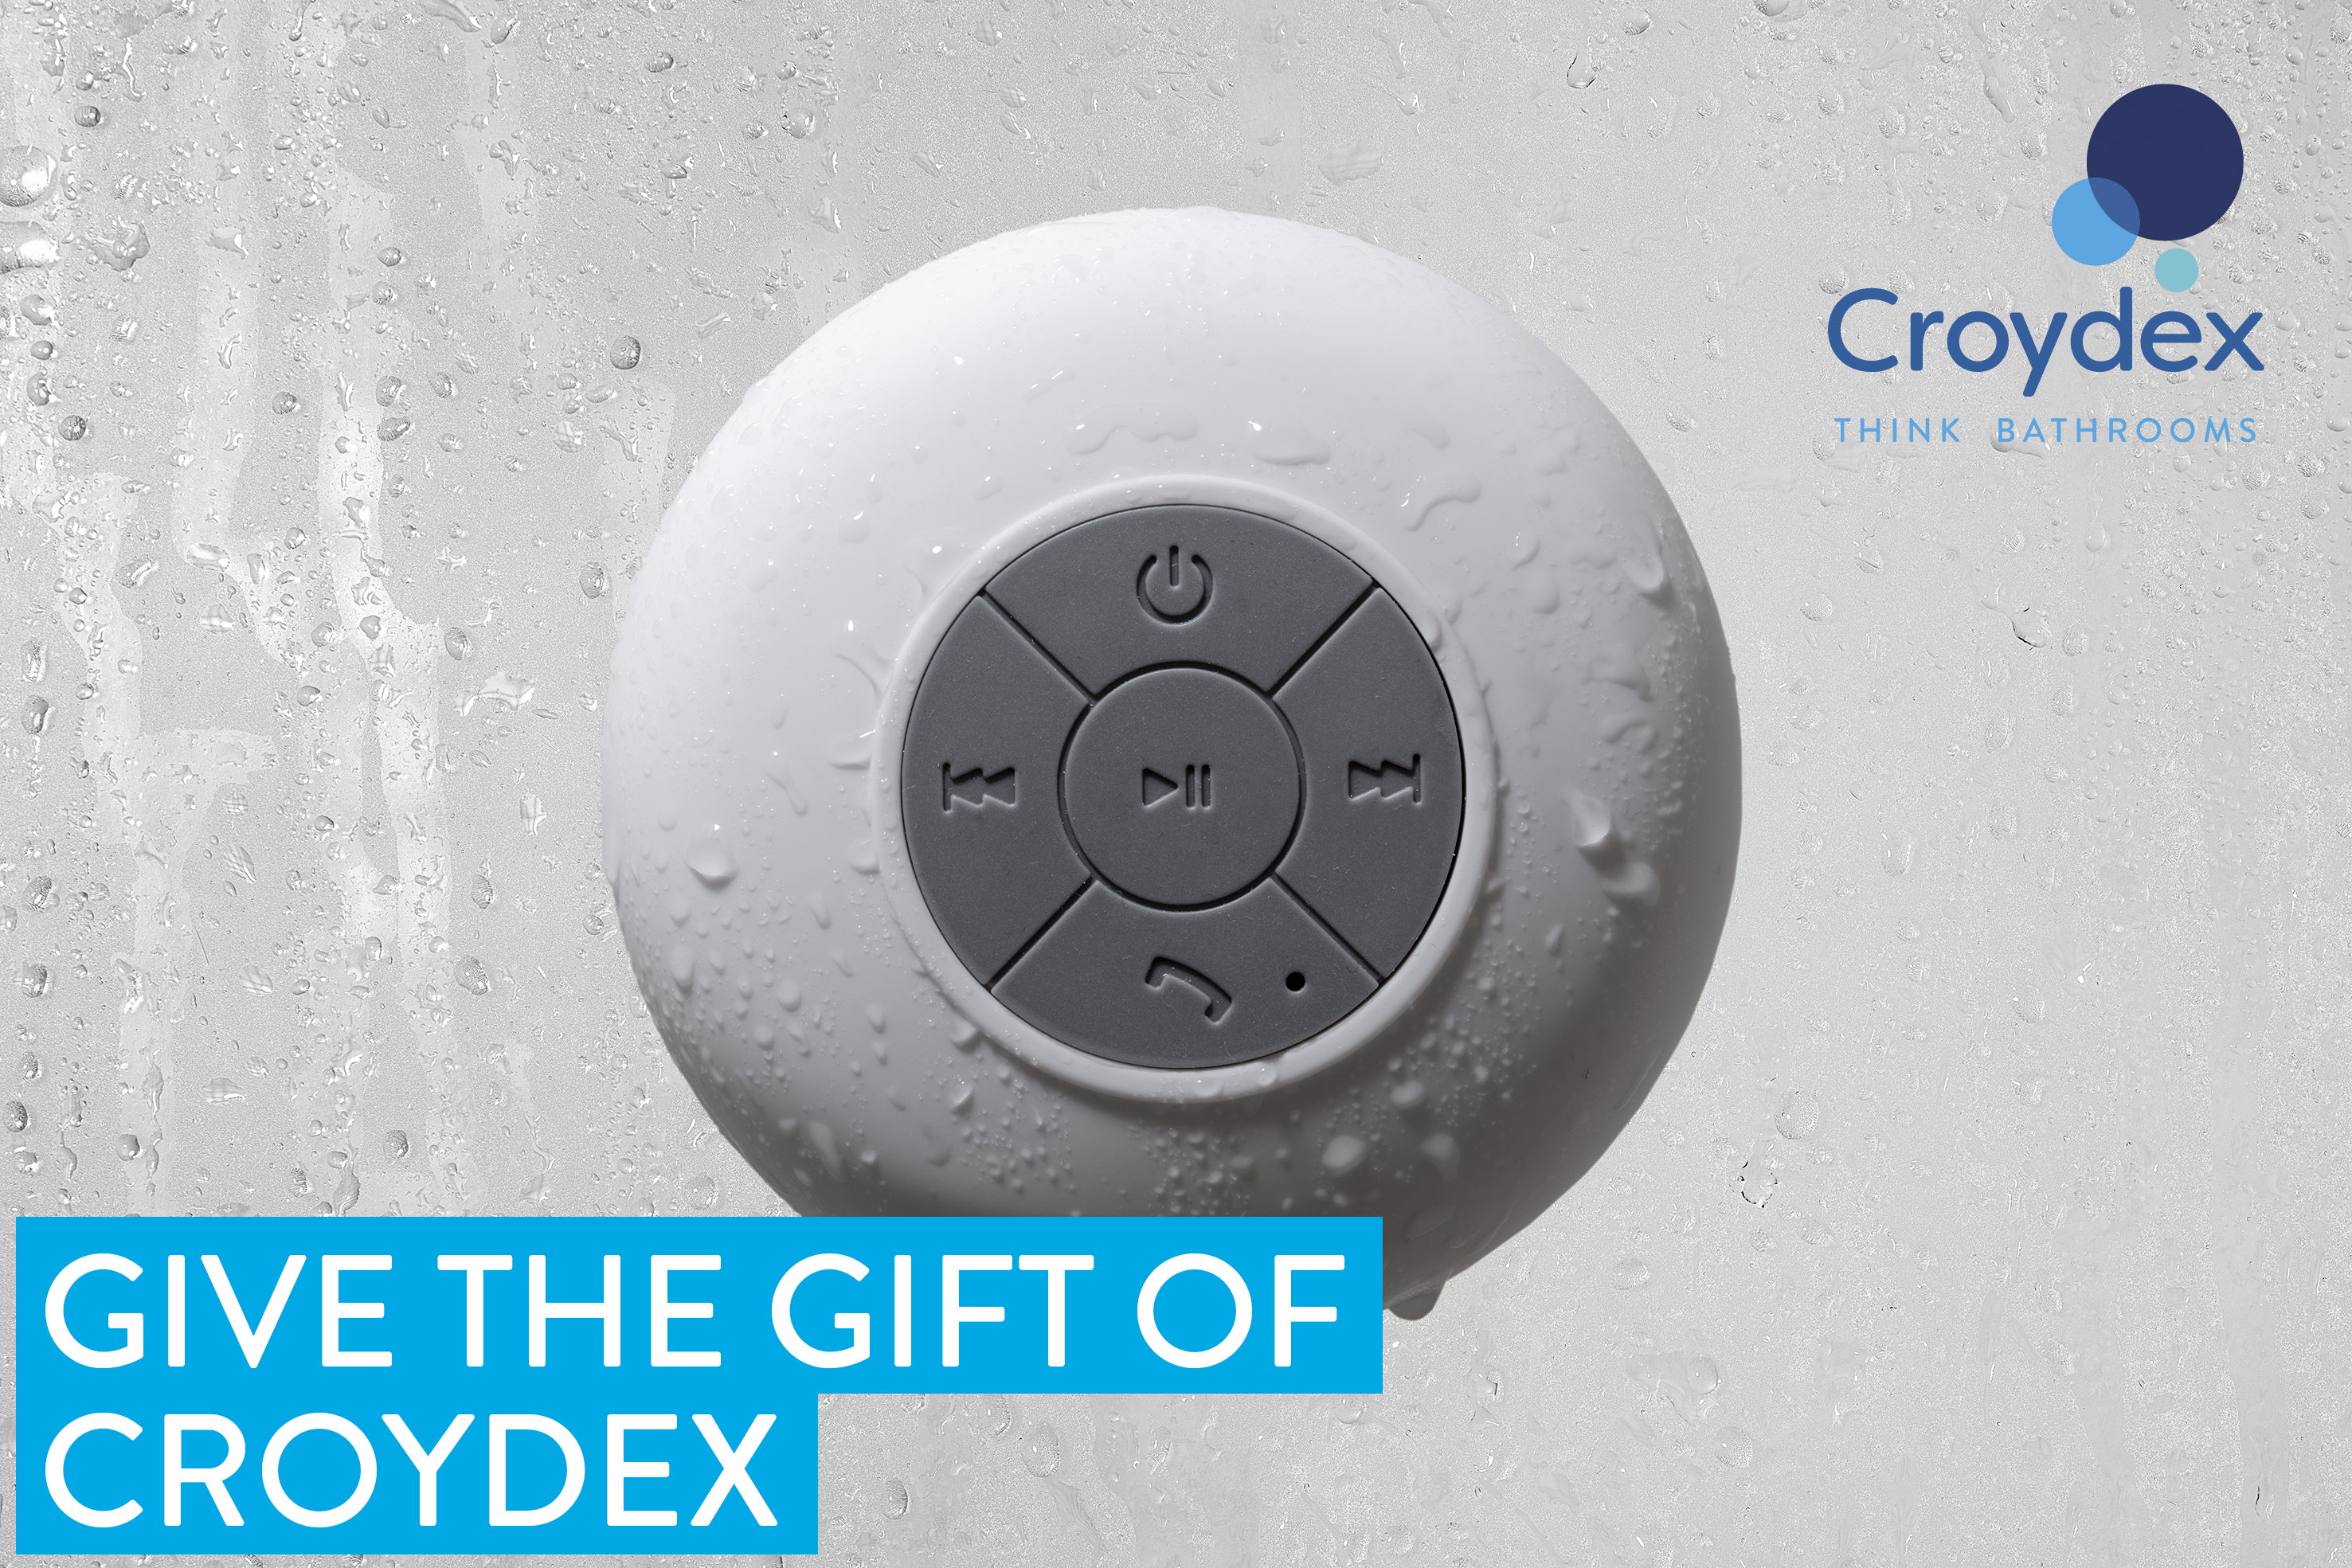 Give the Gift of Croydex